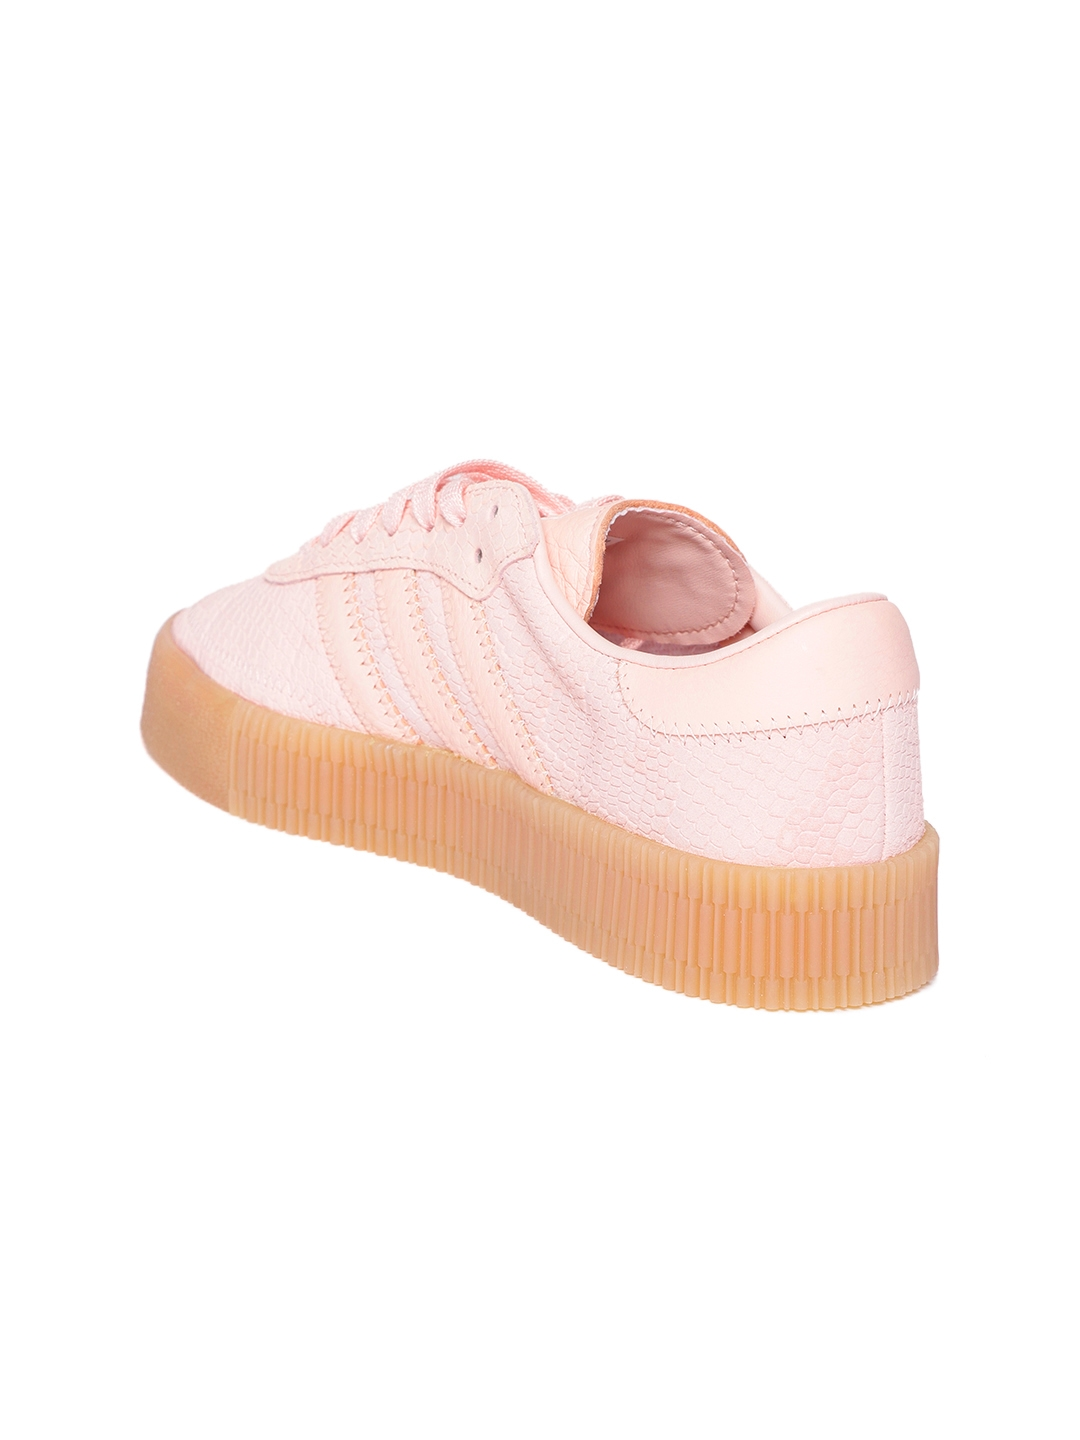 Adidas Originals Women Pink Snake Skin Textured Samba Rose Sneakers fc58036555